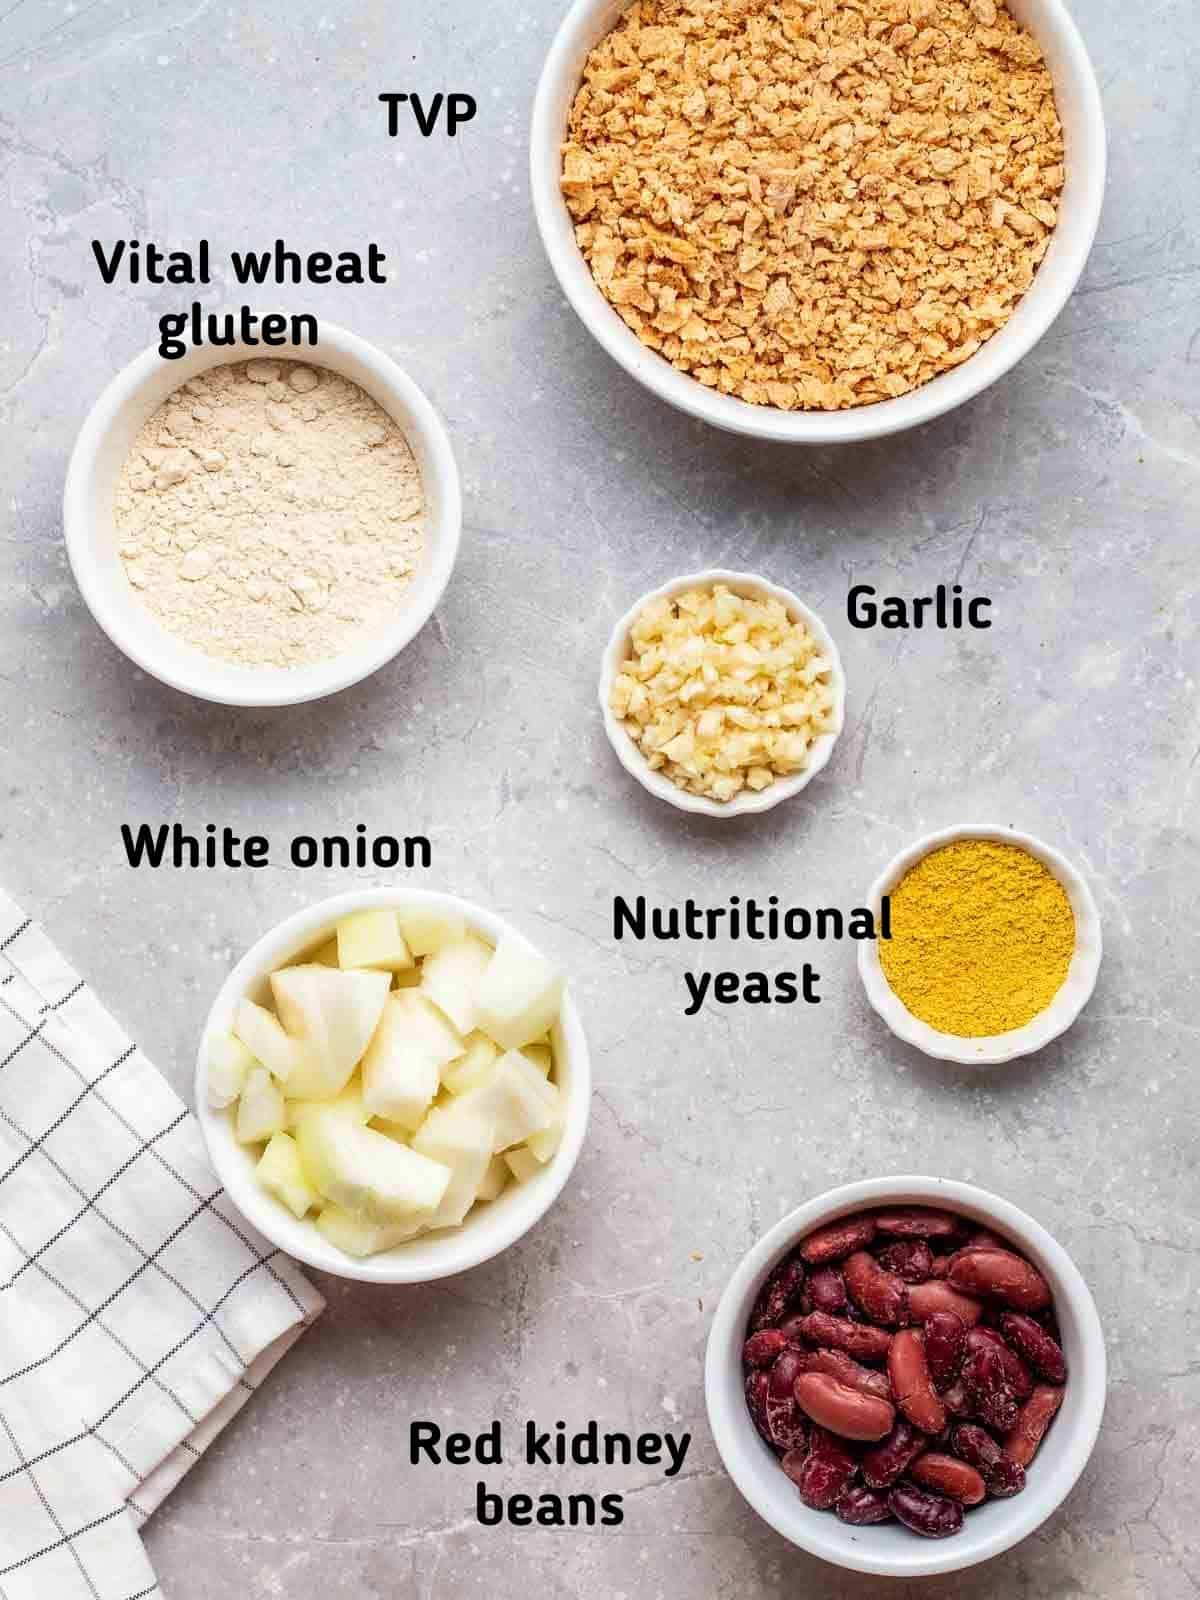 Ingredients needed like TVP, wheat gluten, beans, garlic and onion on a grey background.